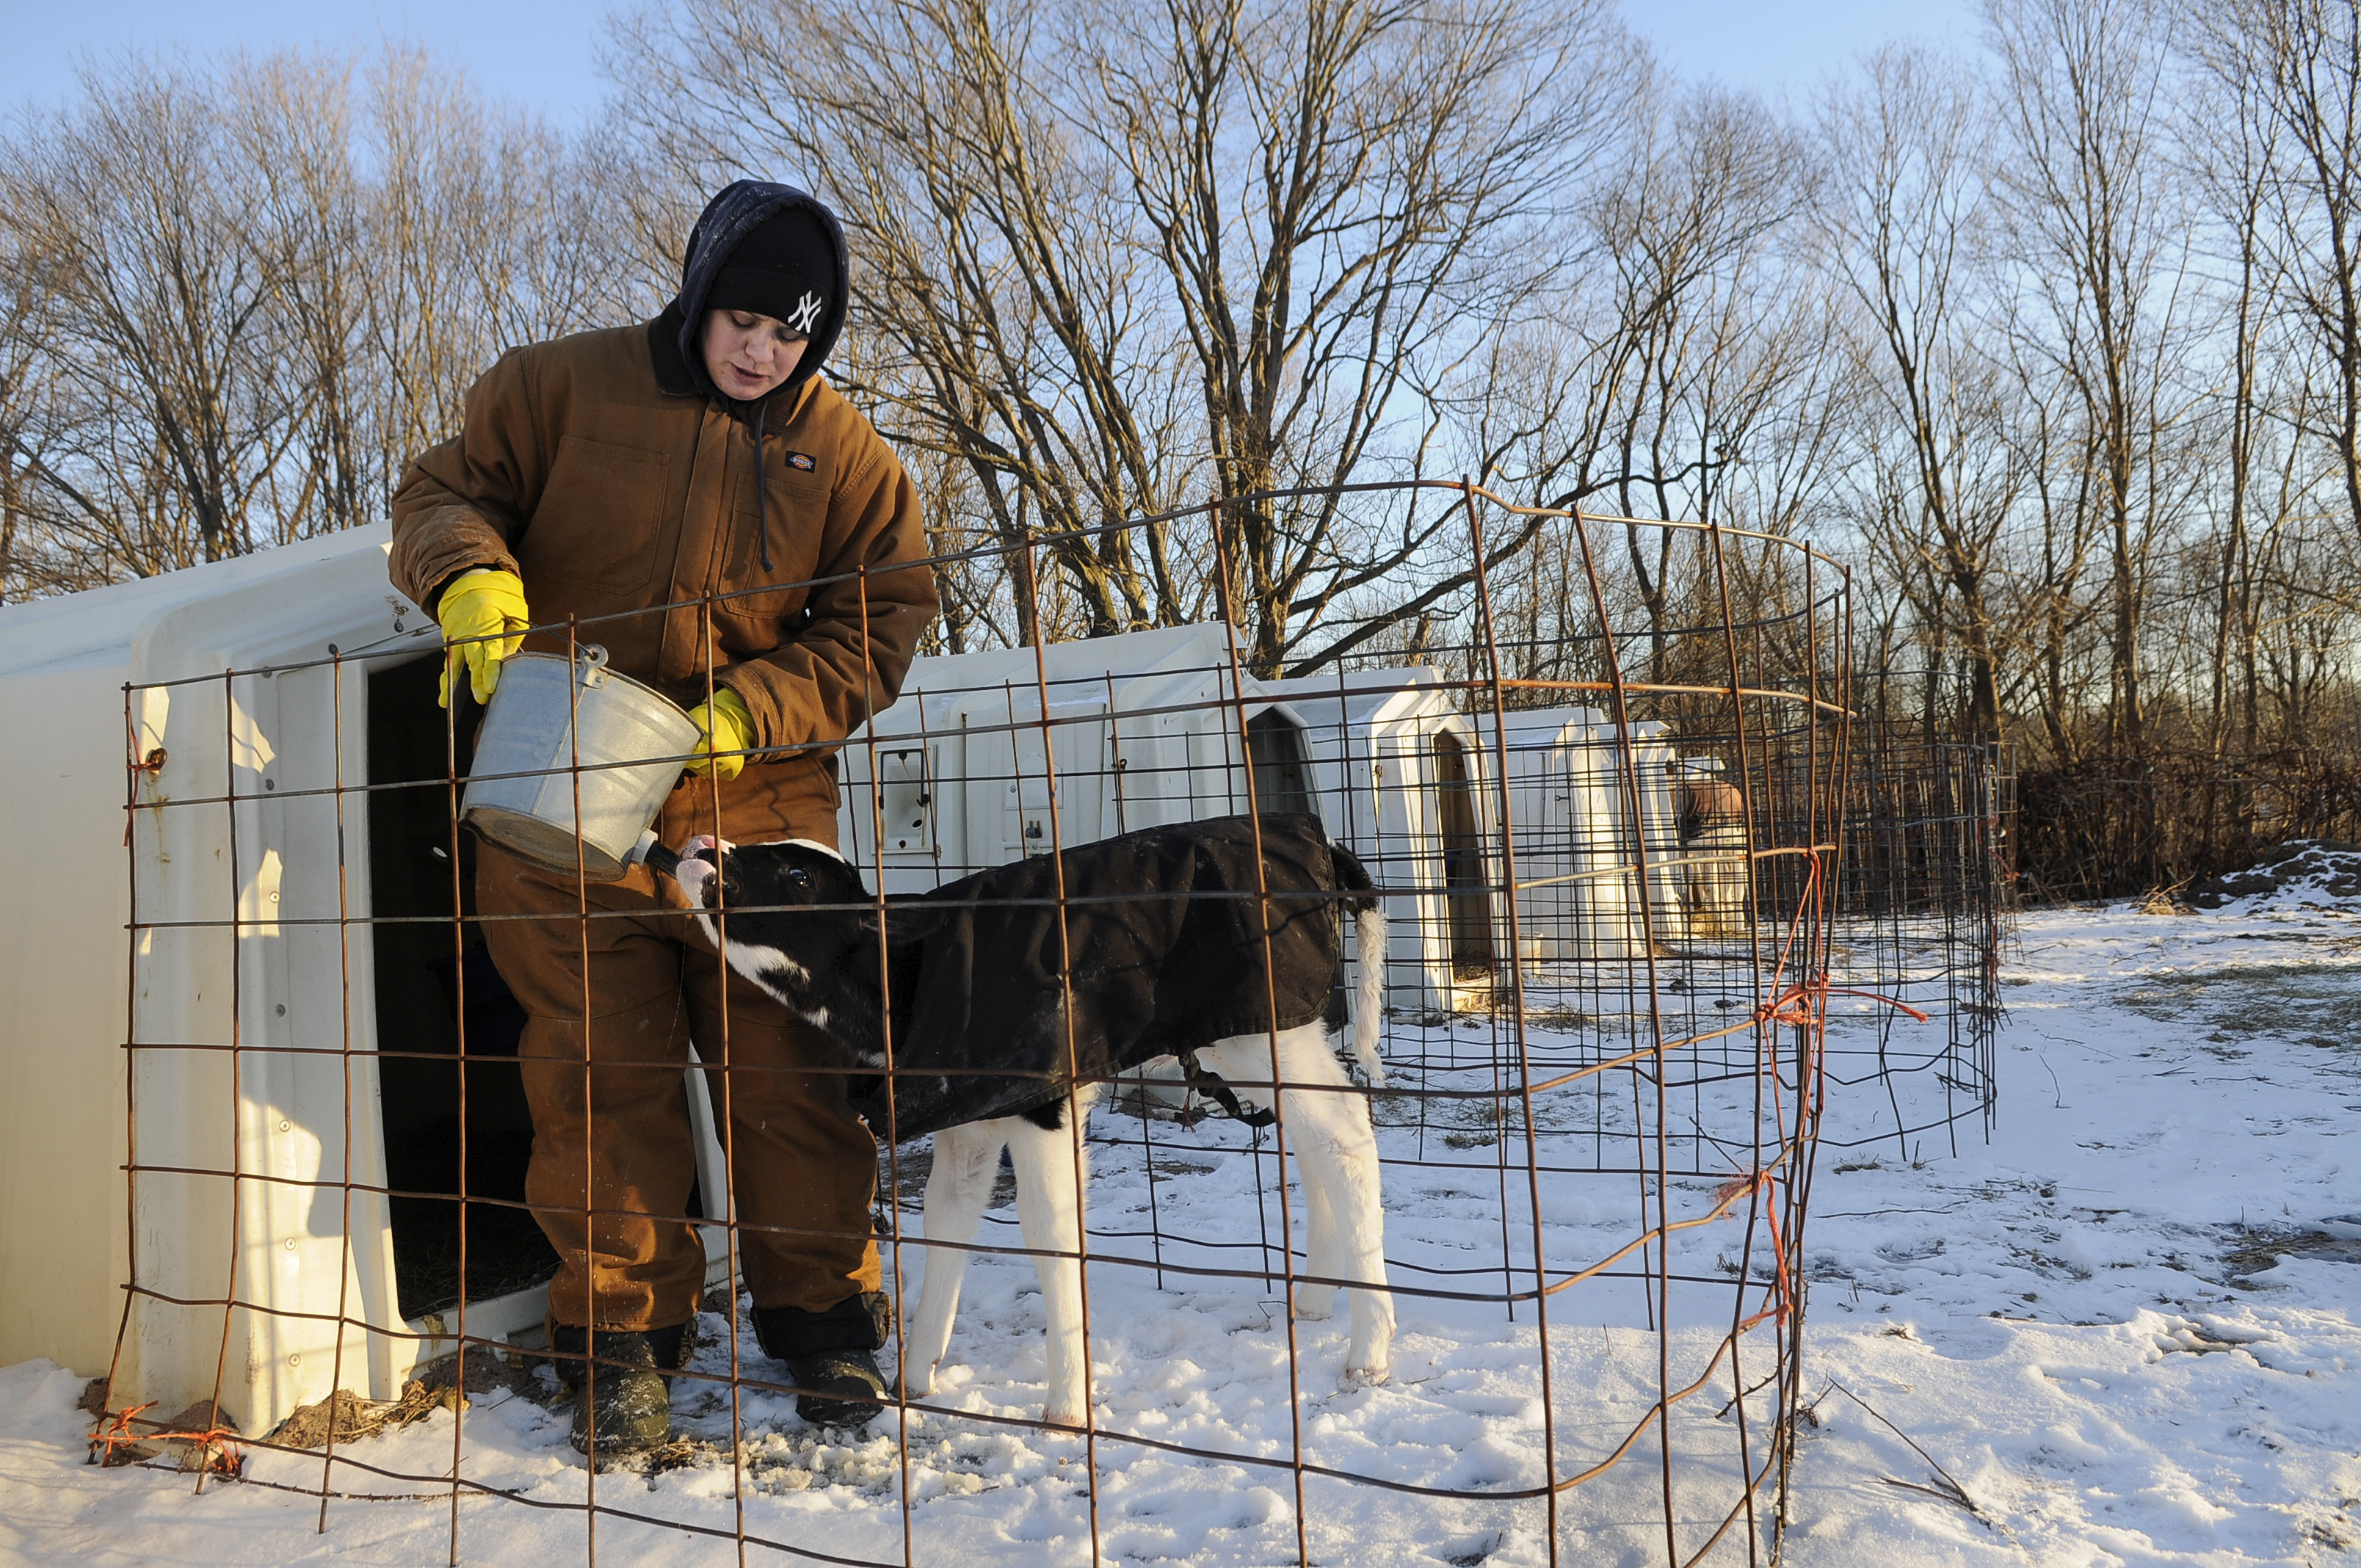 DURHAM 01/08/14 Melissa Greenbacker feeds Eve, a calf born on New Years Eve, with a nipple bucket at Greenbacker Farm in 5-degree weather Wednesday morning. Greenbacker spends each morning feeding and watering the 20 calves on the Durham dairy farm.  CLOE POISSON|cpoisson@courant.com